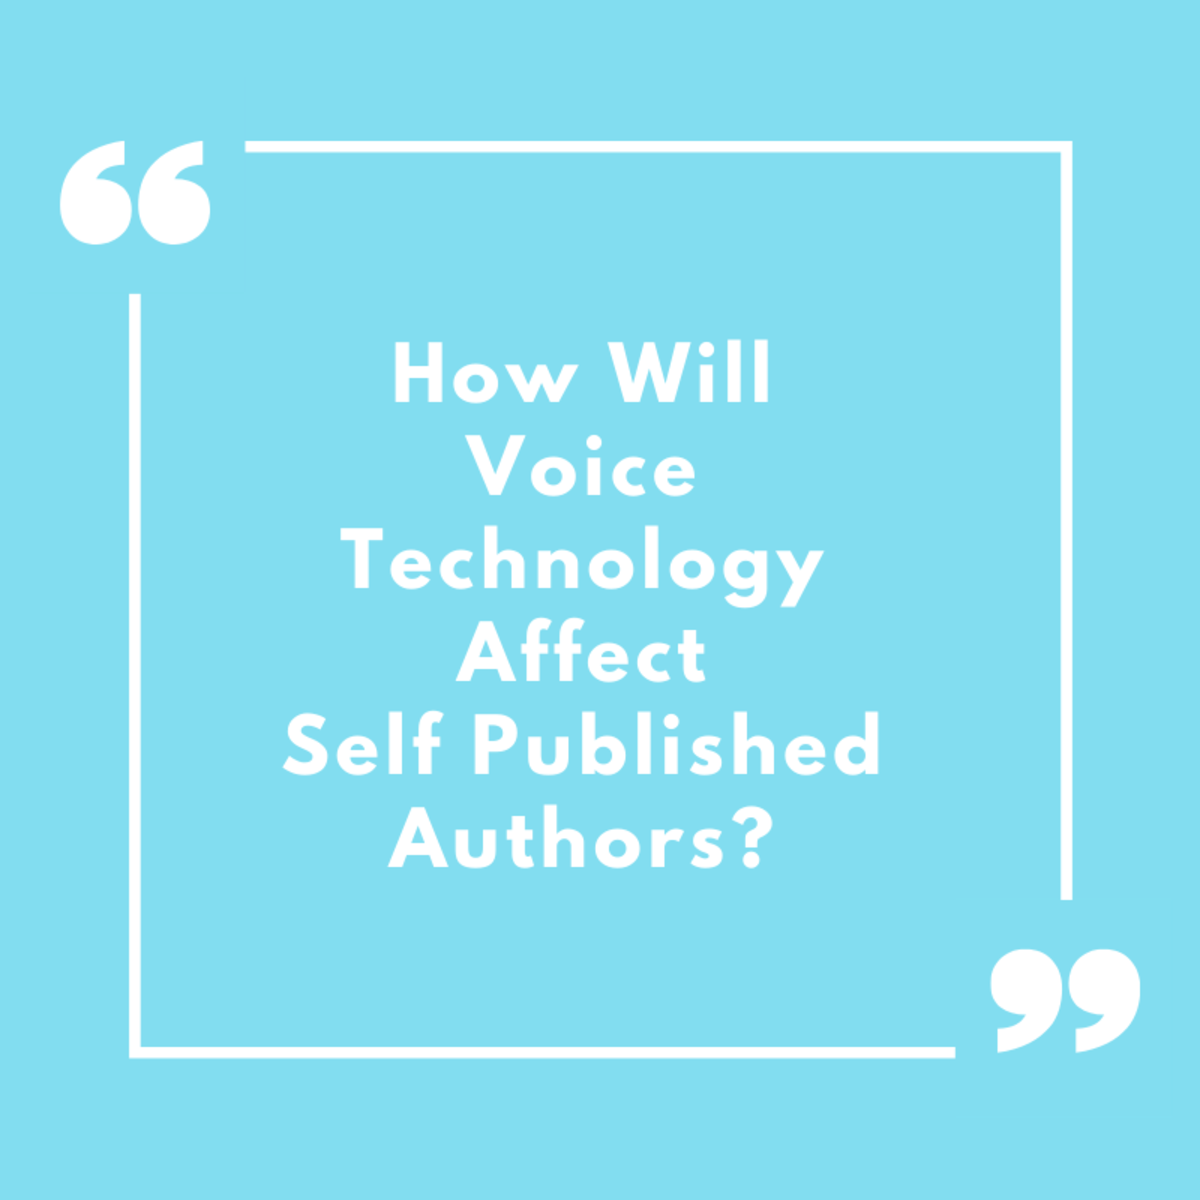 How Will Voice Technology Affect Self-Published Authors?